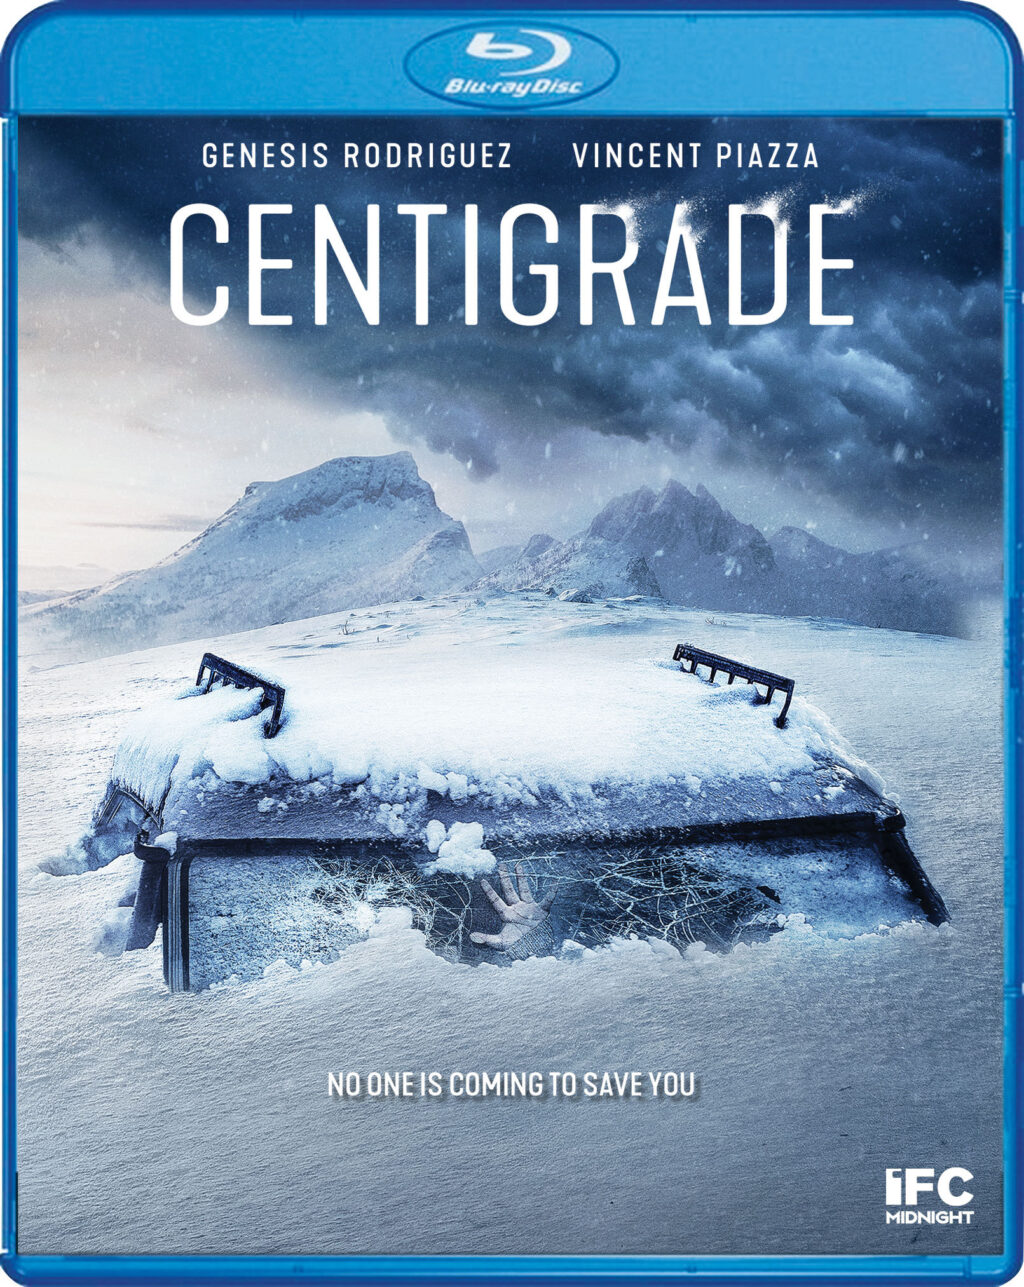 Centigrade Blu ray 1024x1287 - Contained Thriller CENTIGRADE Hits Blu-ray & DVD 2/23